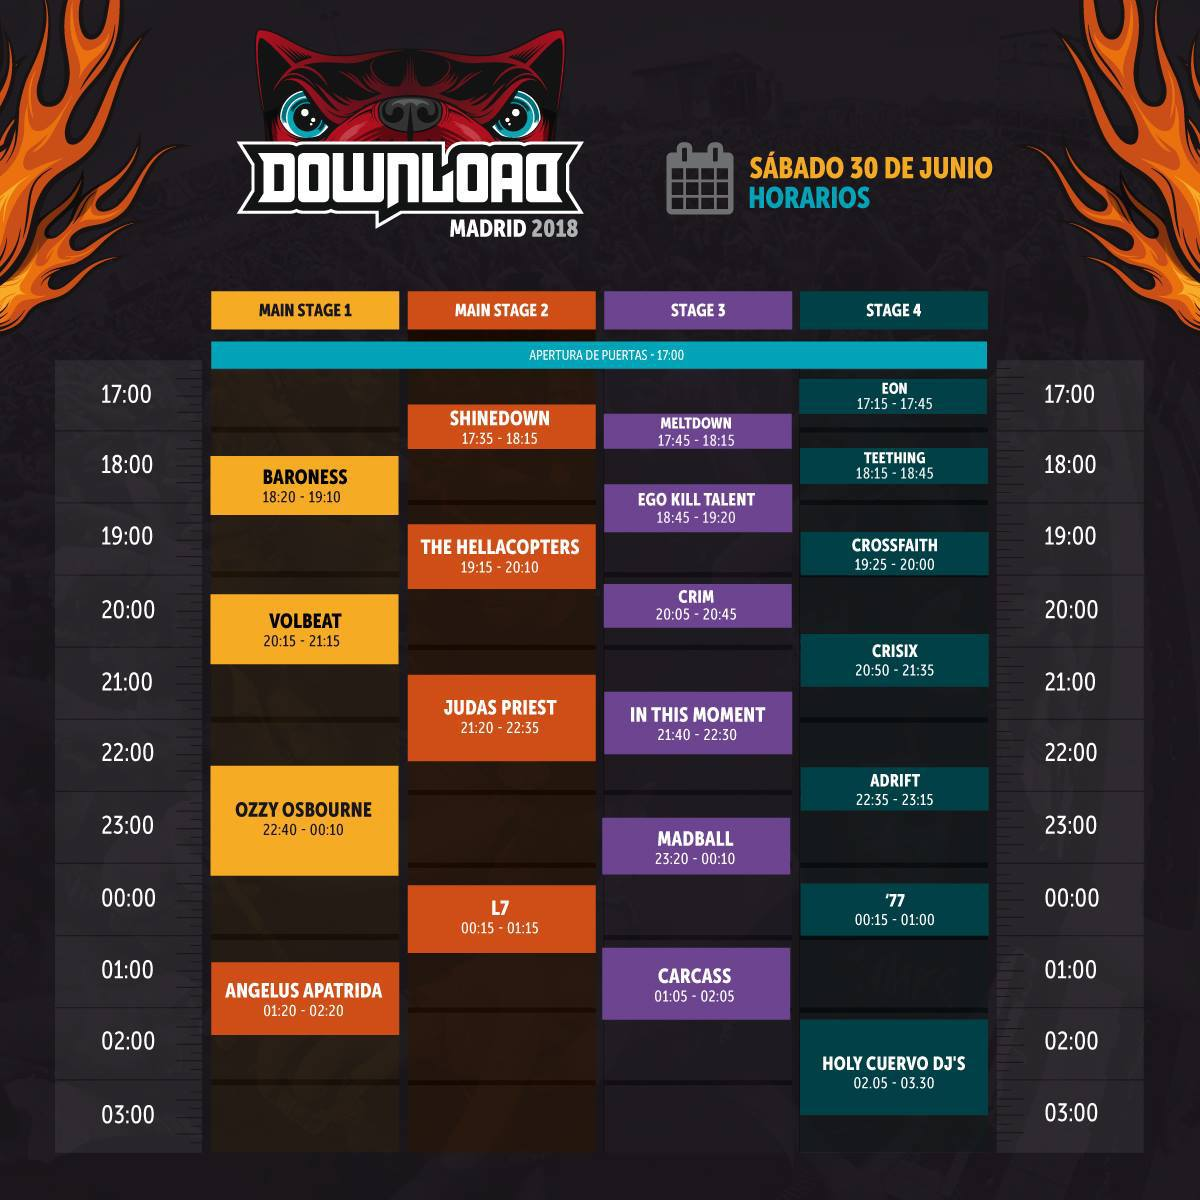 horarios download madrid 2018 sabado